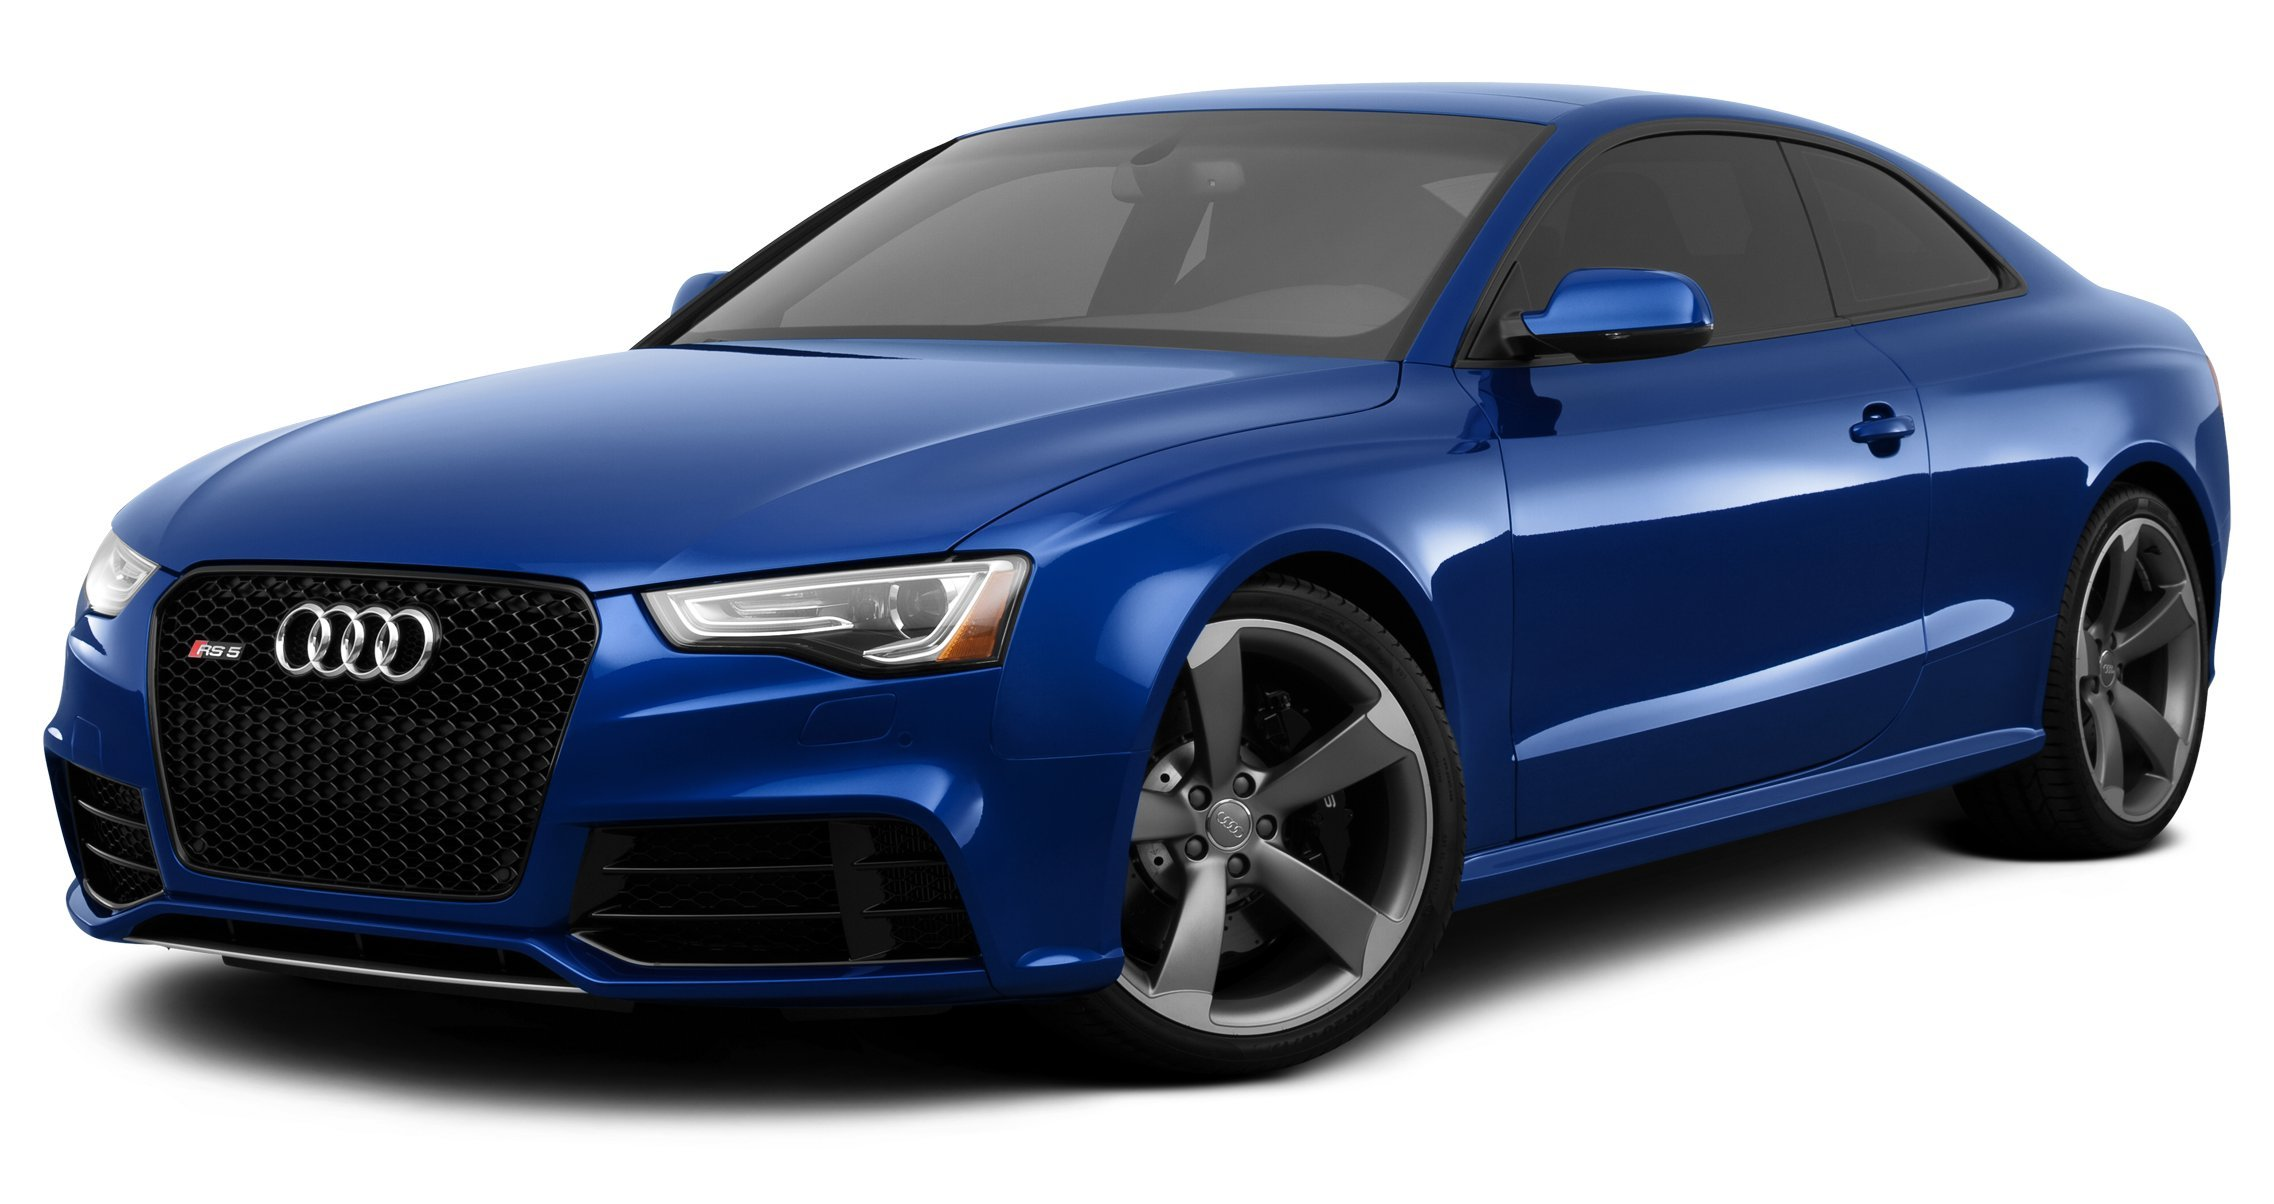 Amazoncom Audi RS Reviews Images And Specs Vehicles - 2 door audi